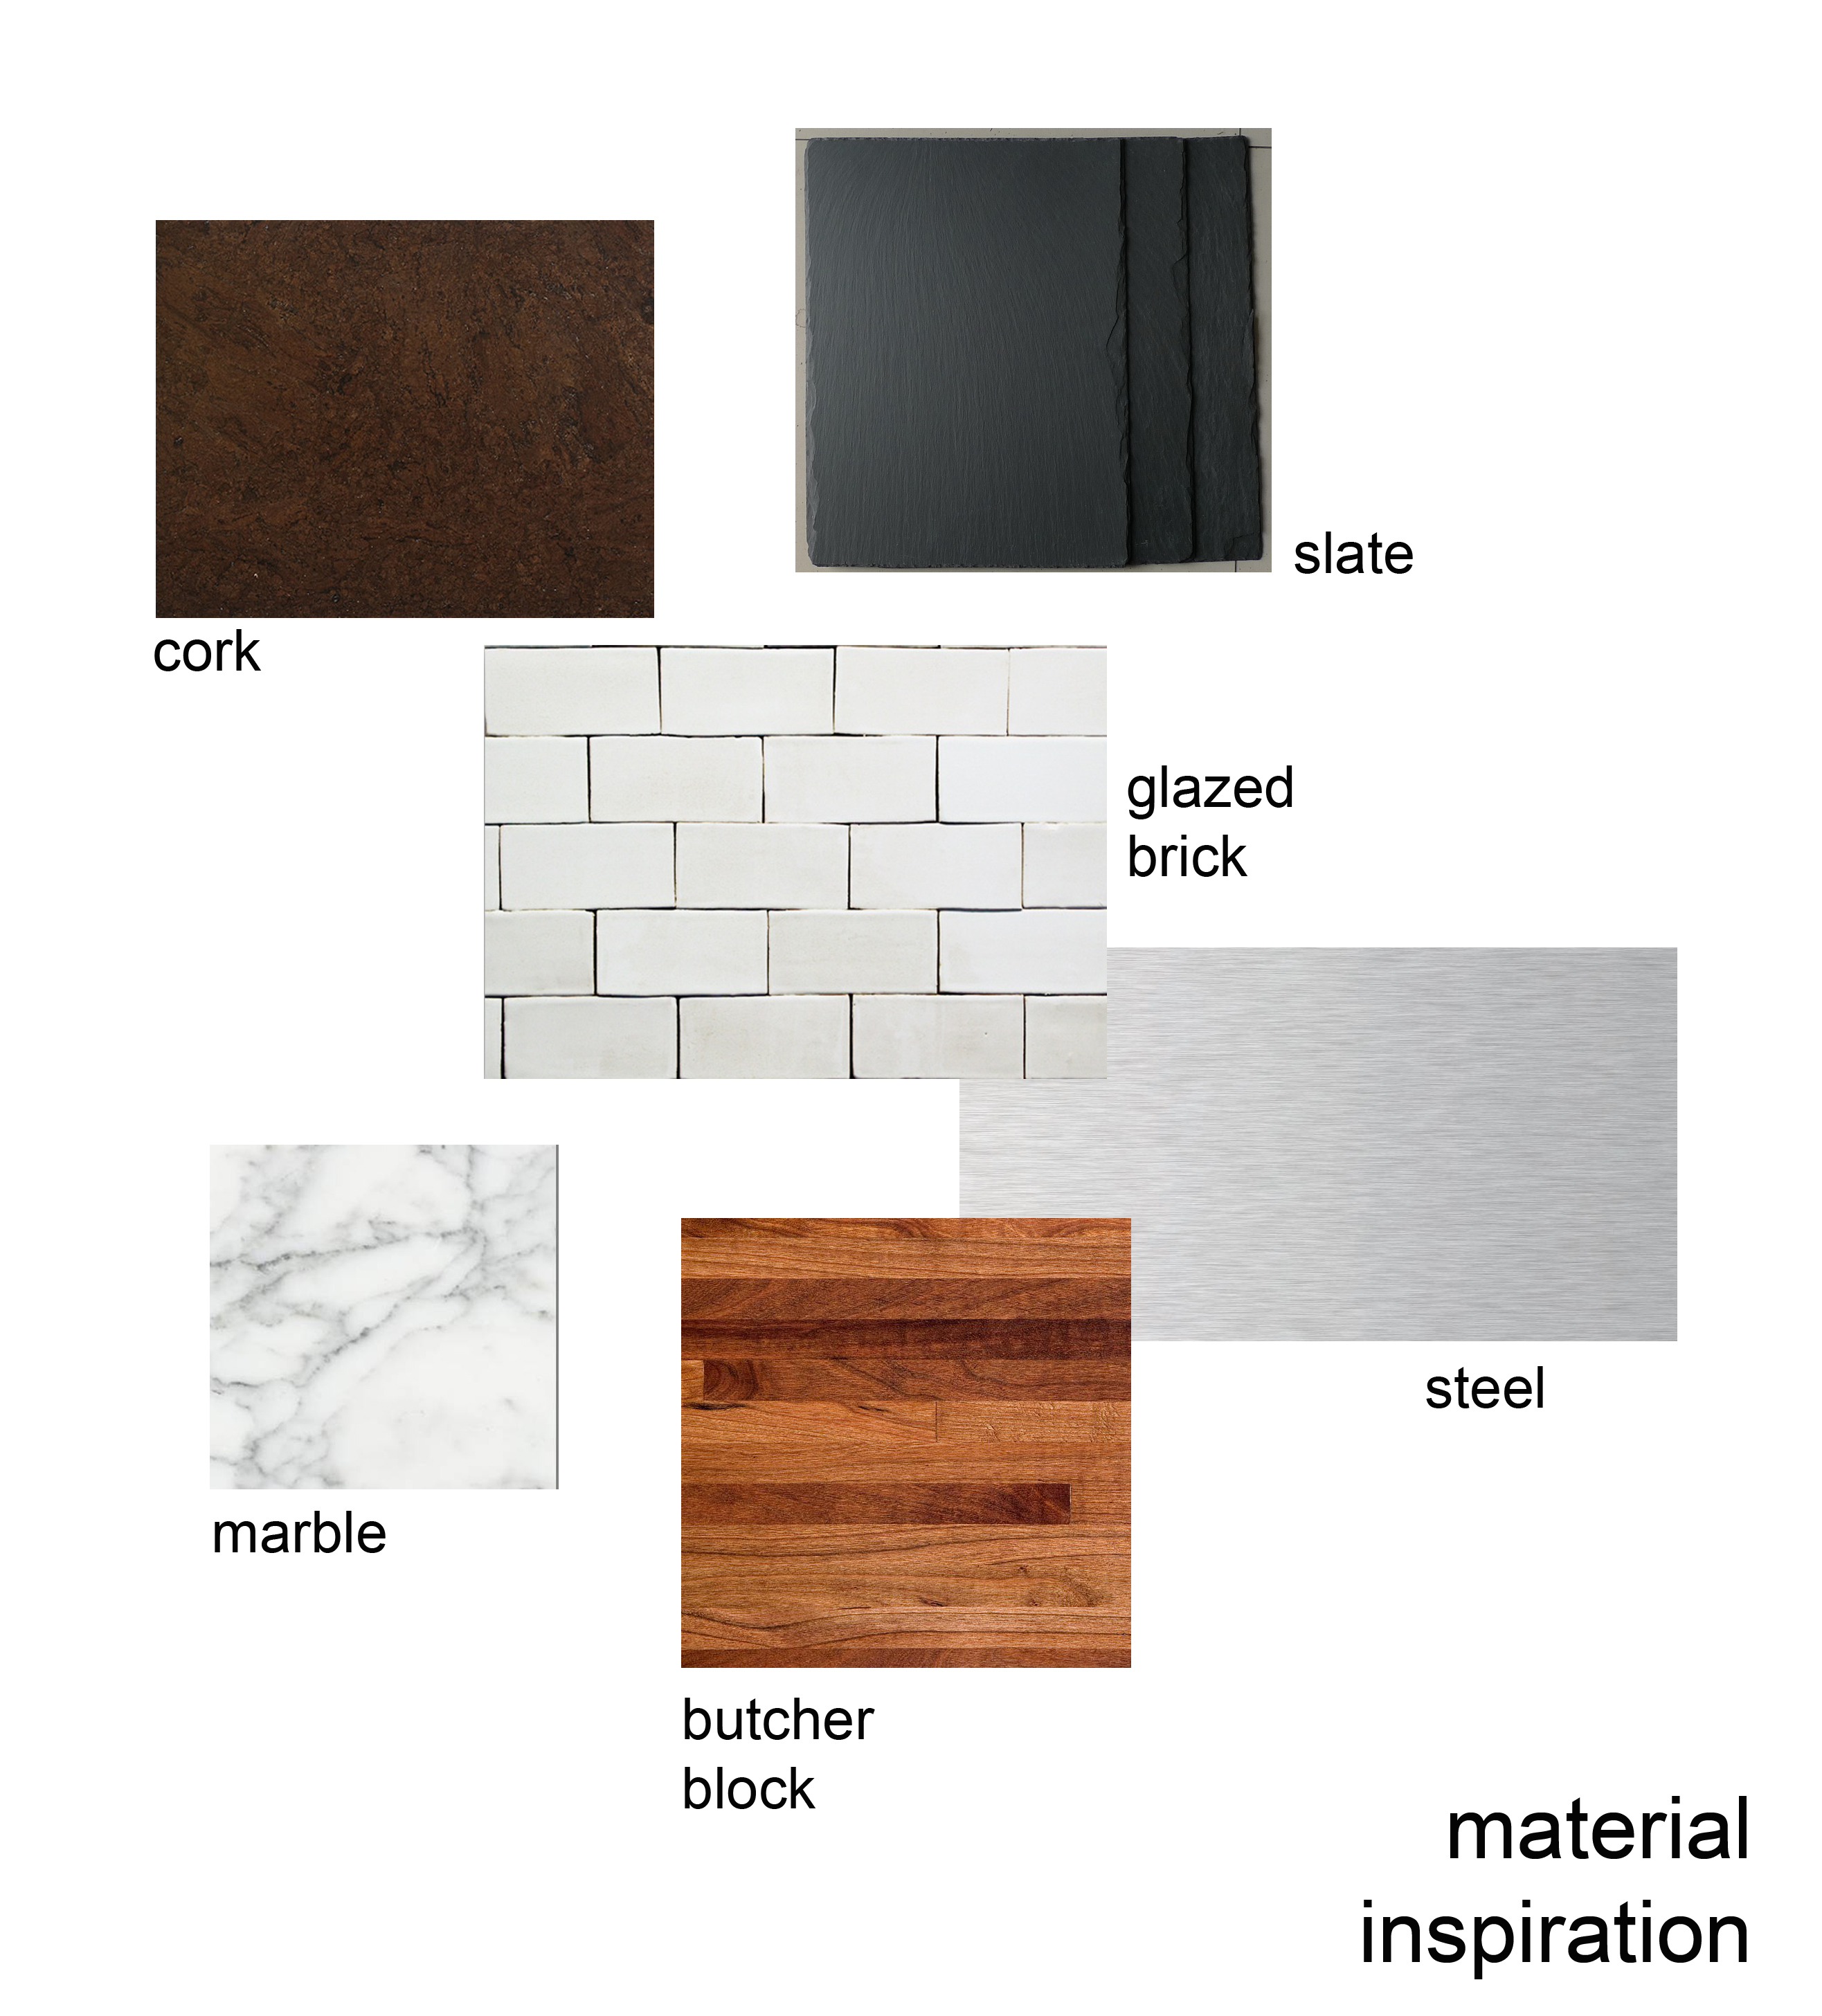 Material Inspiration